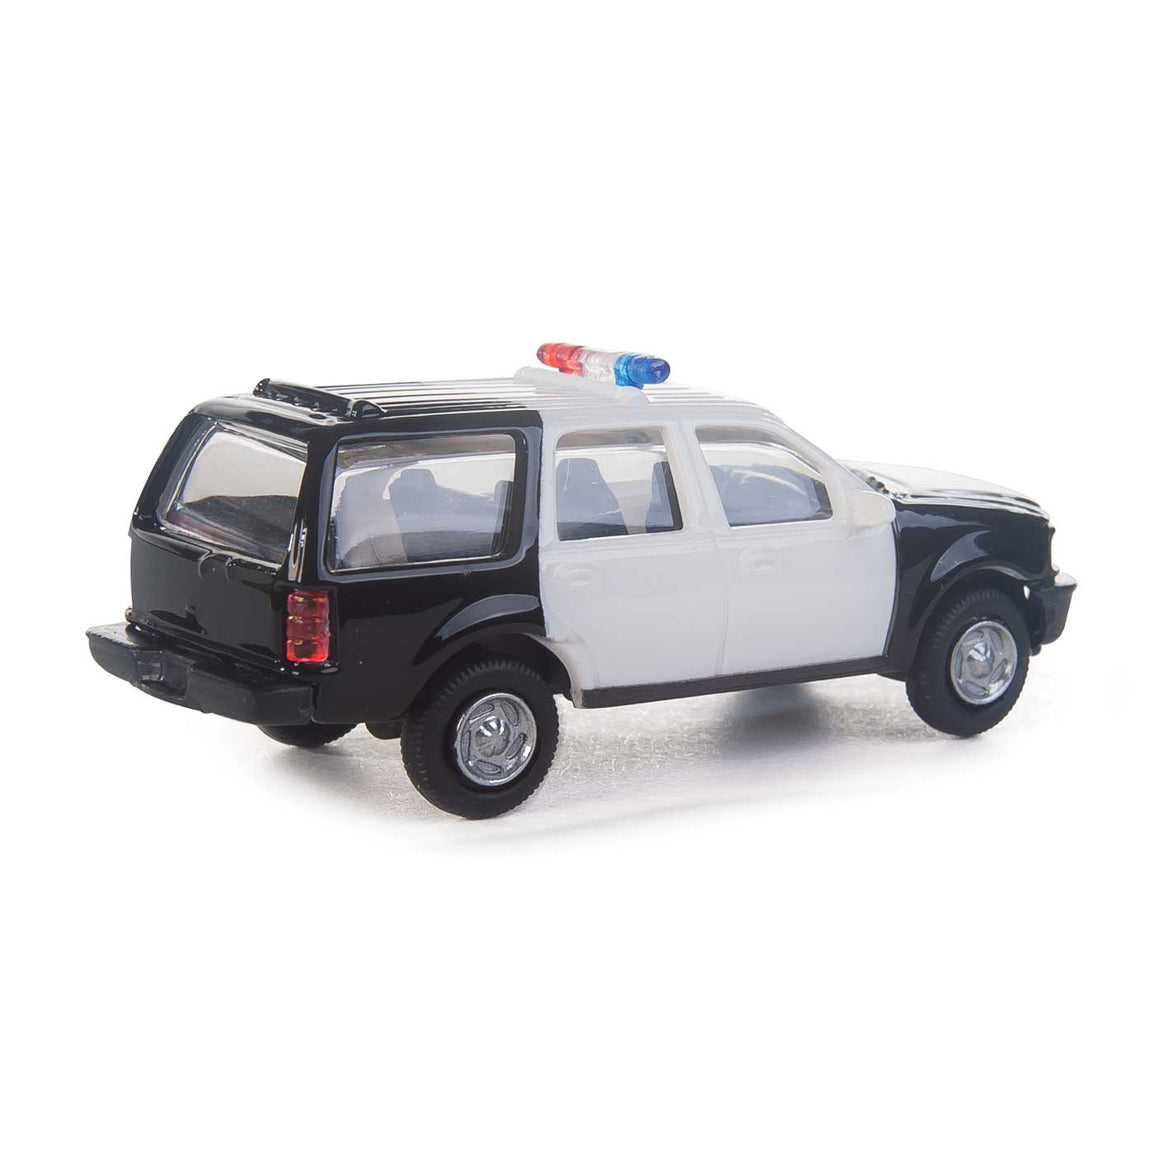 HO Scale: Ford® Expedition Service Vehicle - Black & White